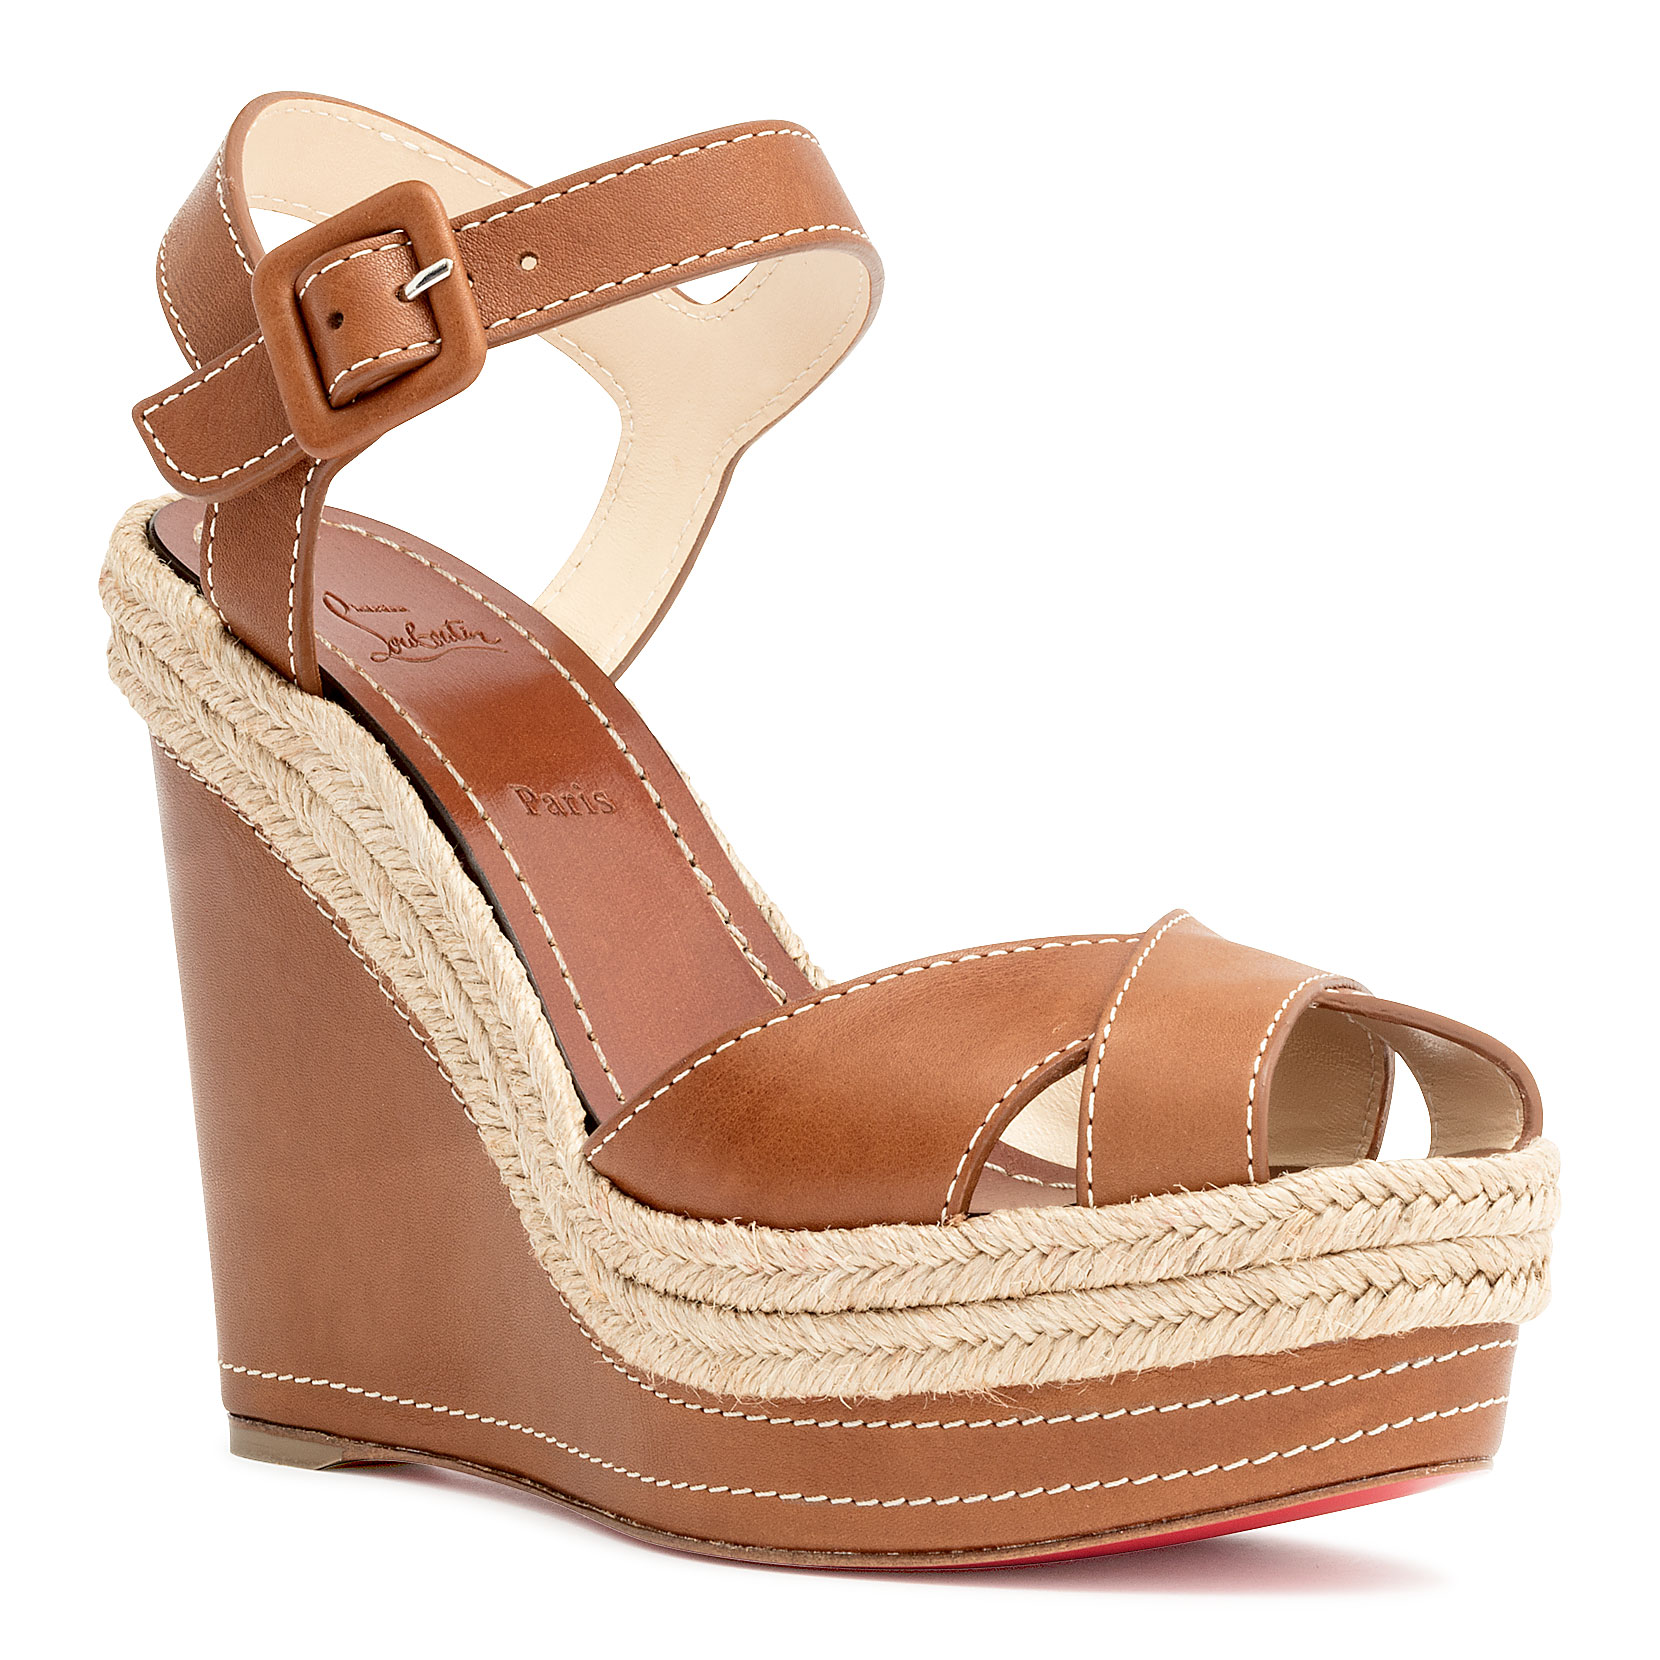 09d5fcc1d80 Christian Louboutin Almeria 120 Espadrille Platform Wedge Sandals In ...